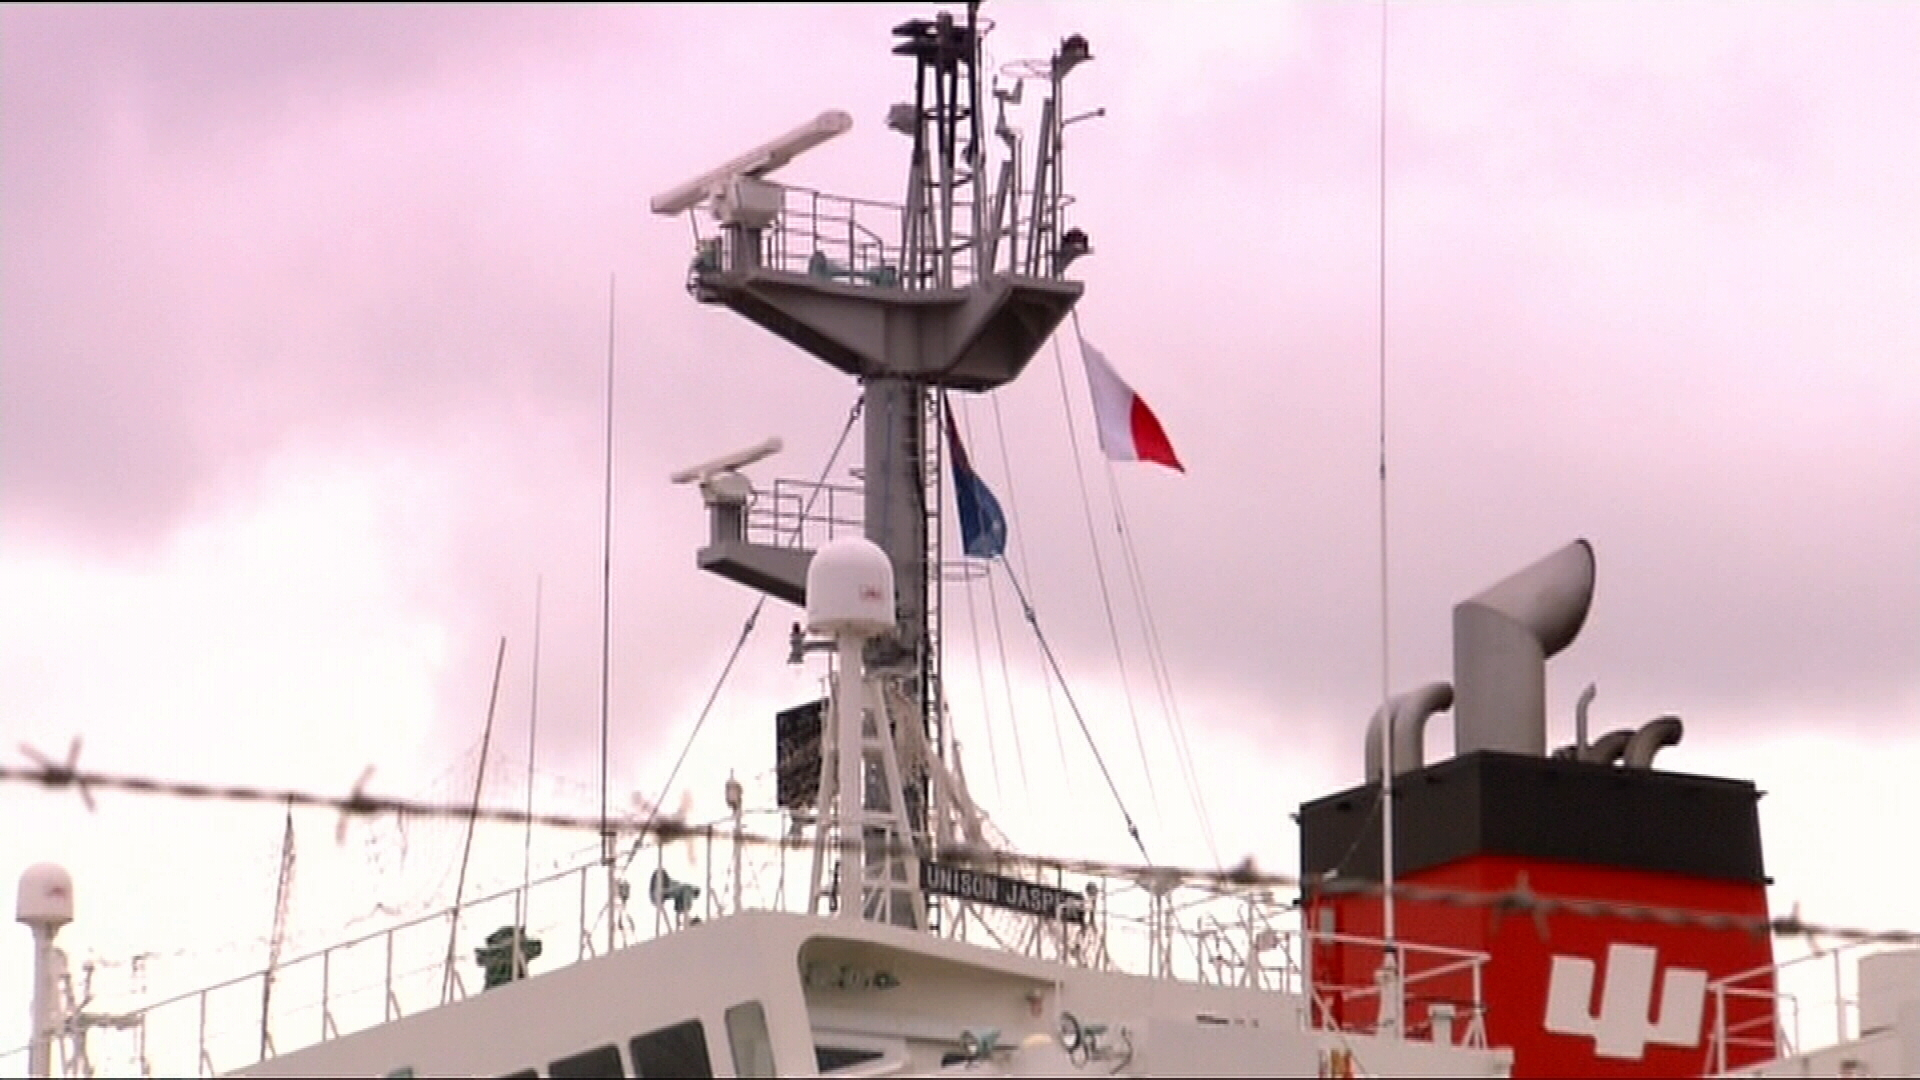 The crew, made up of Chinese and Burmese nationals, have been on board the ship for 14 months.